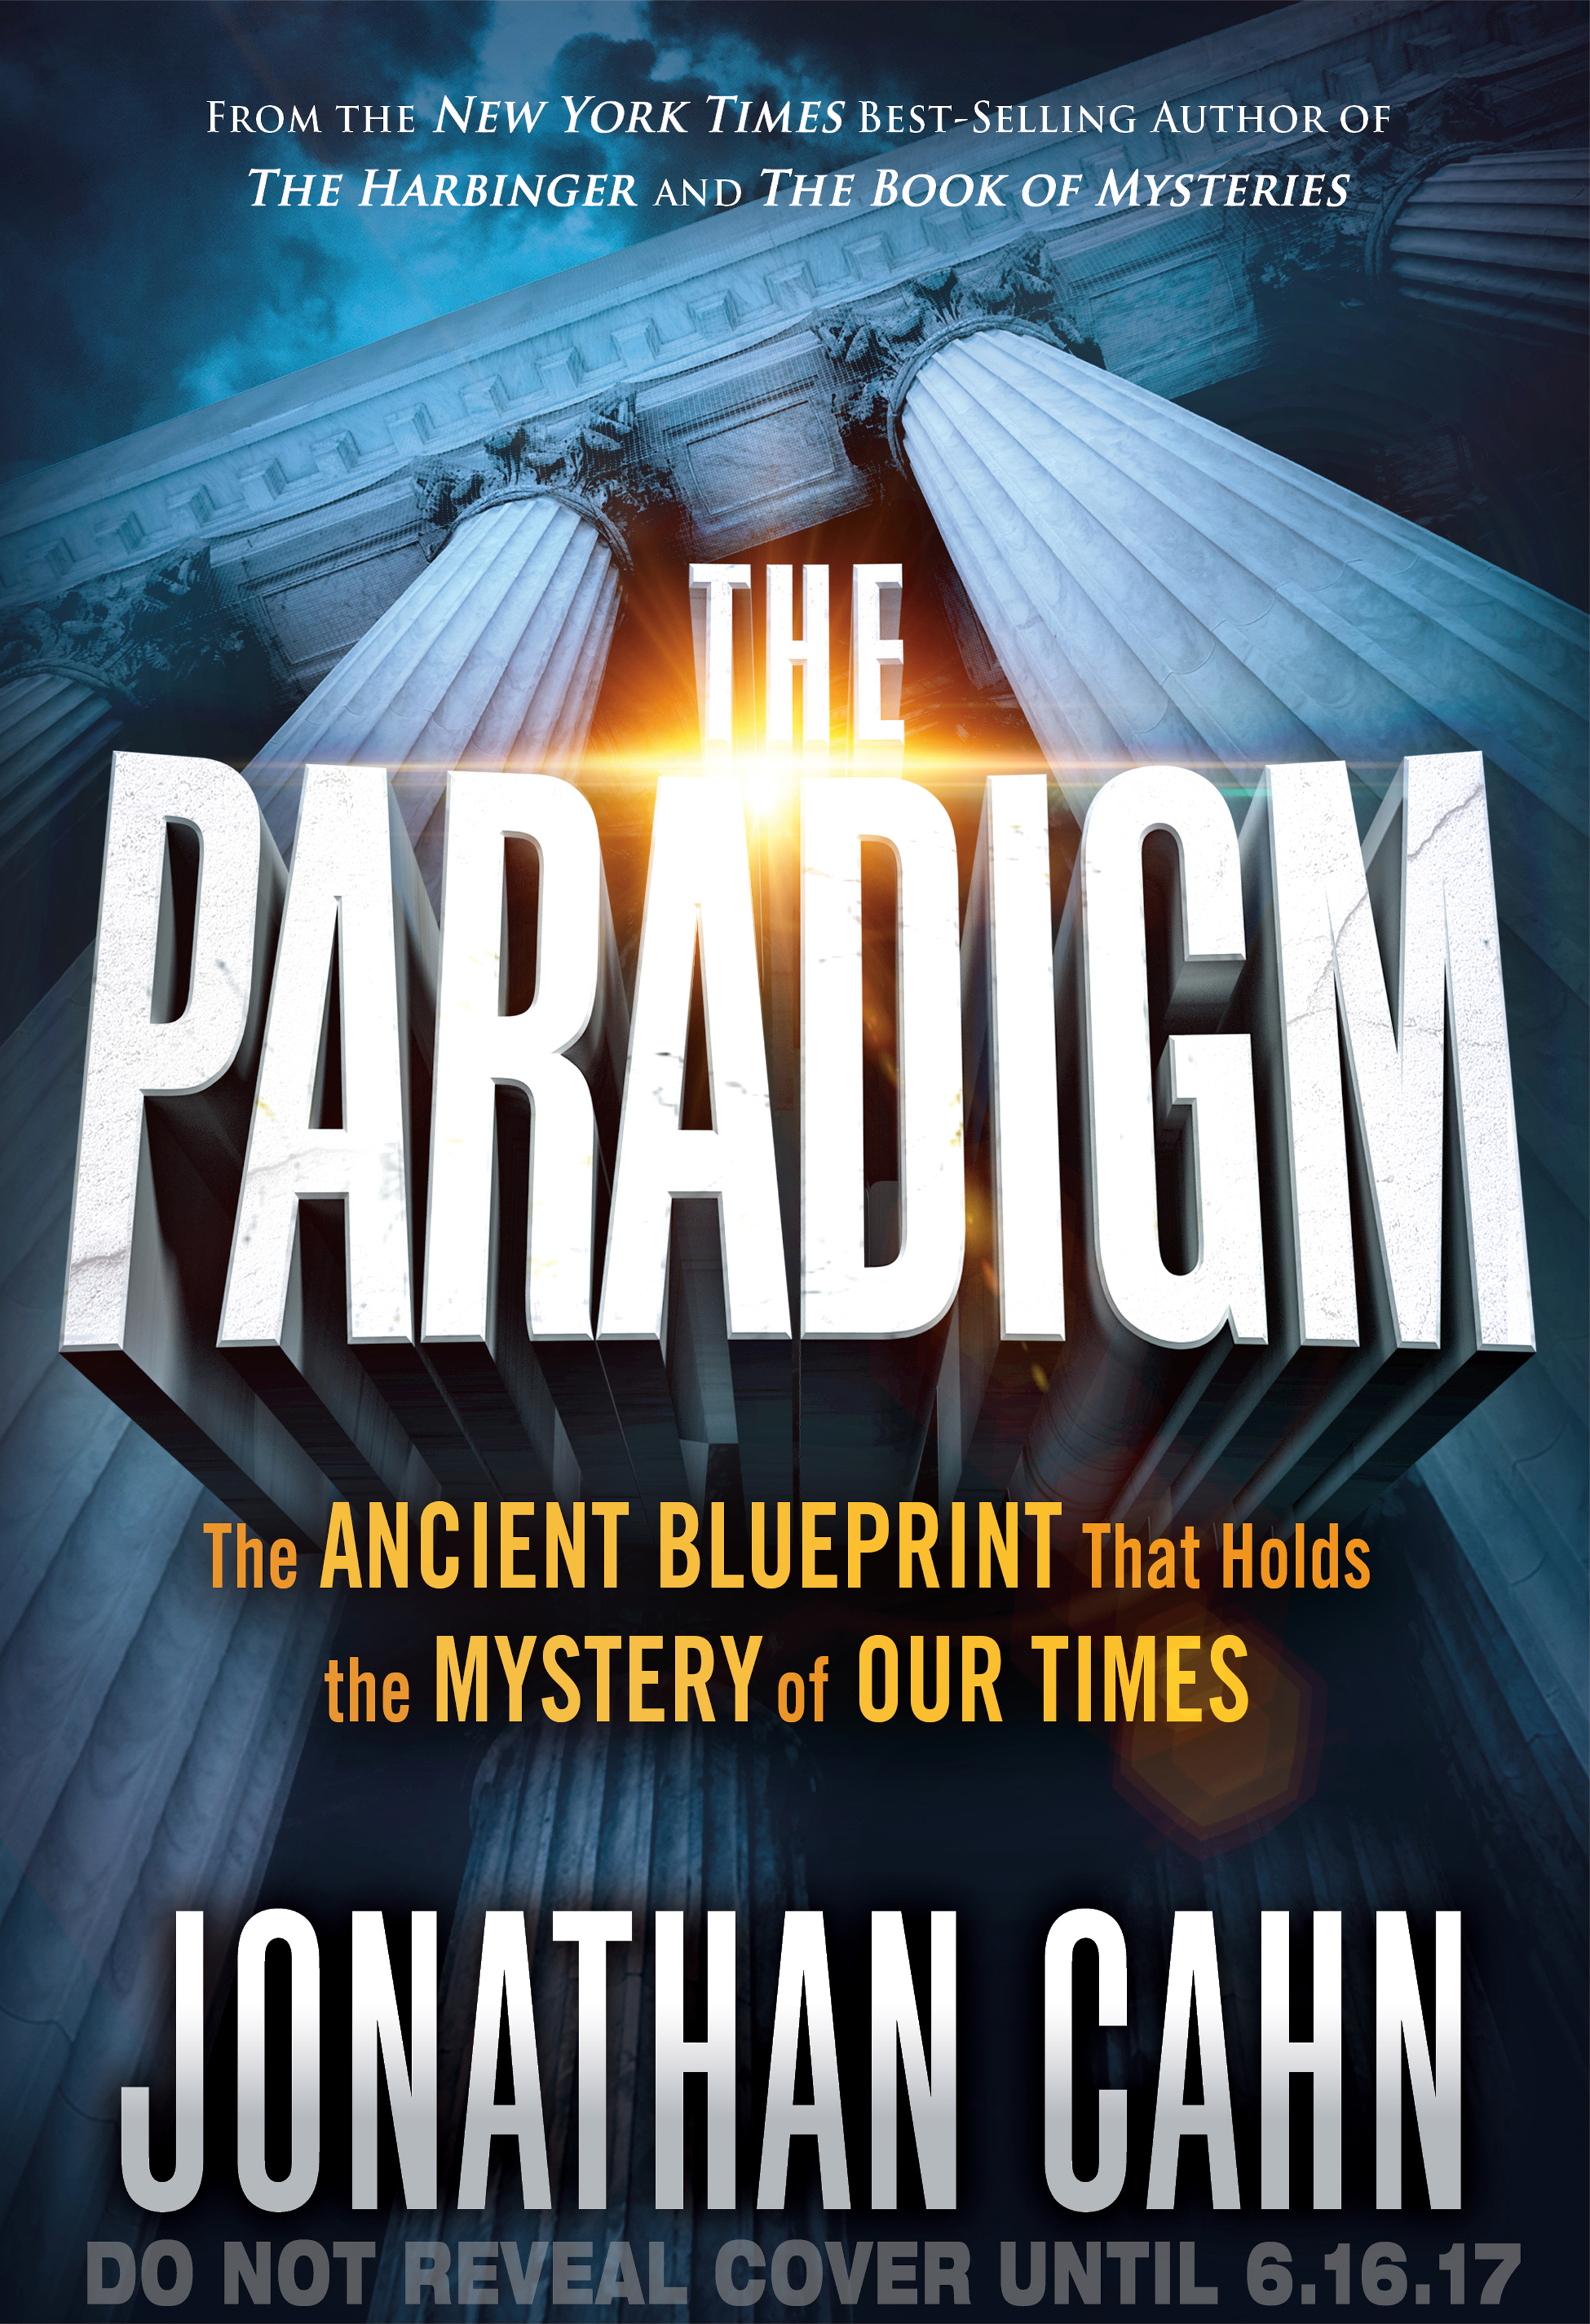 View and download the cover of jonathan cahns explosive new book additionally frontline the publishers of the paradigm have released the cover of cahns new book today view the cover here will link to the cover malvernweather Images